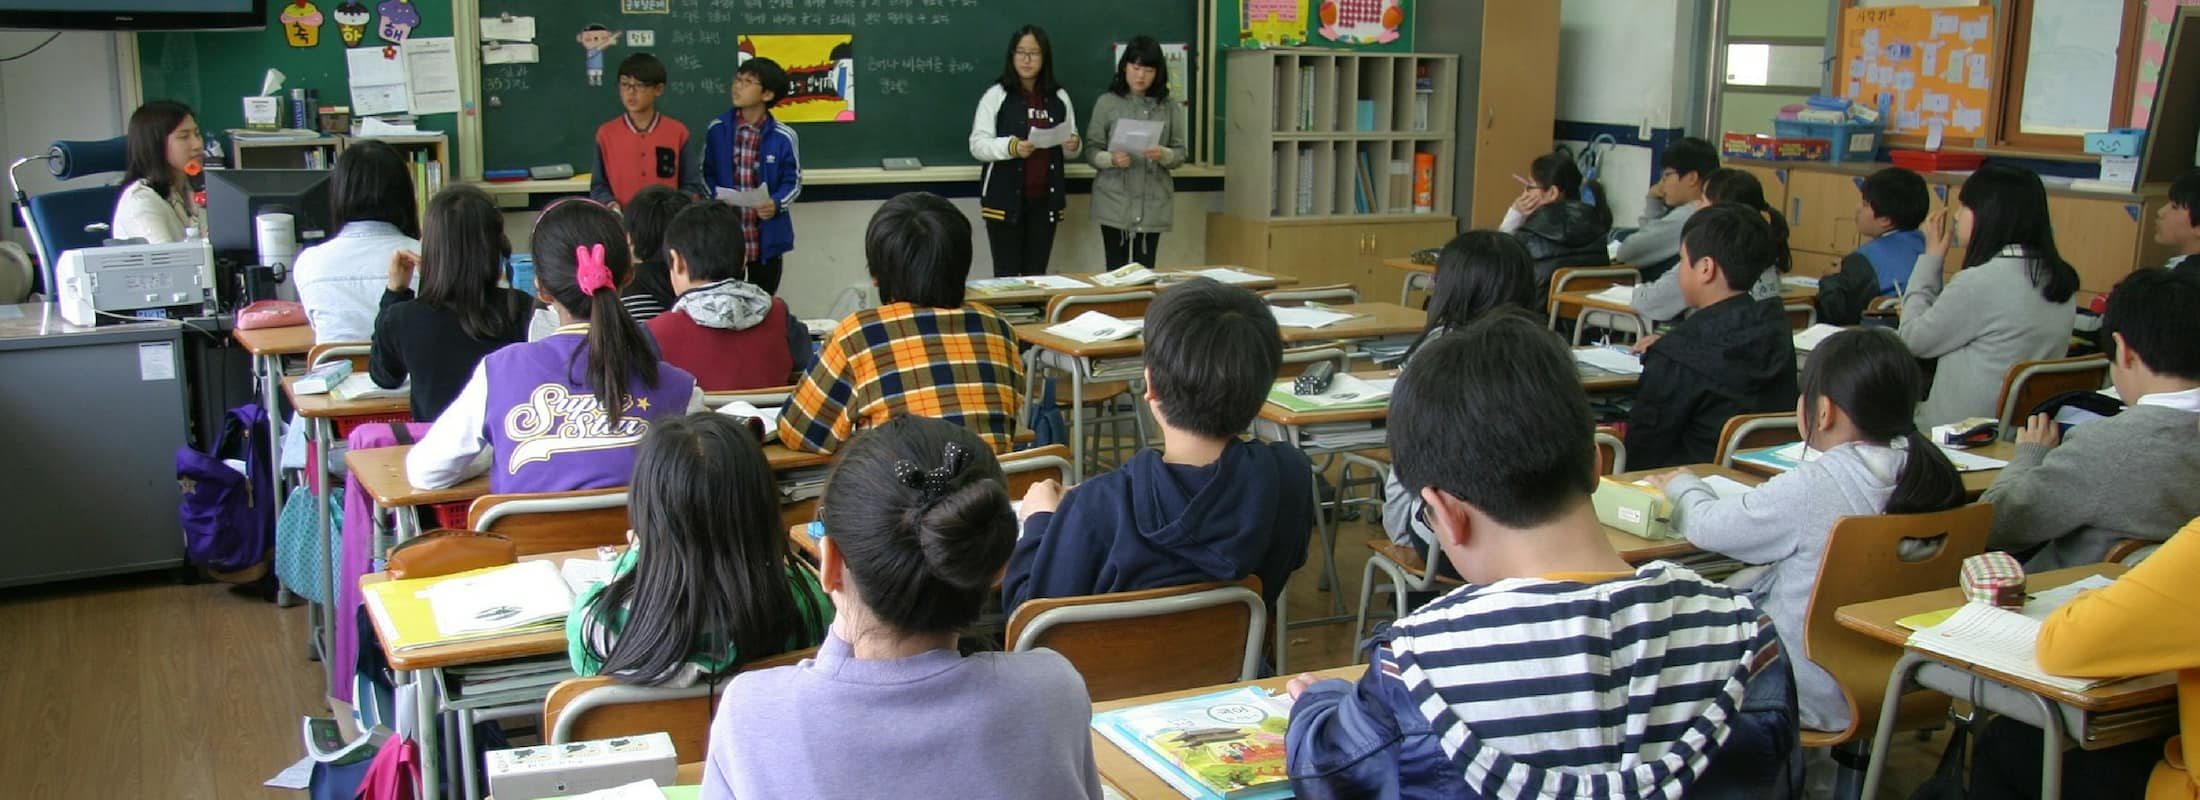 A classroom of students and their teacher